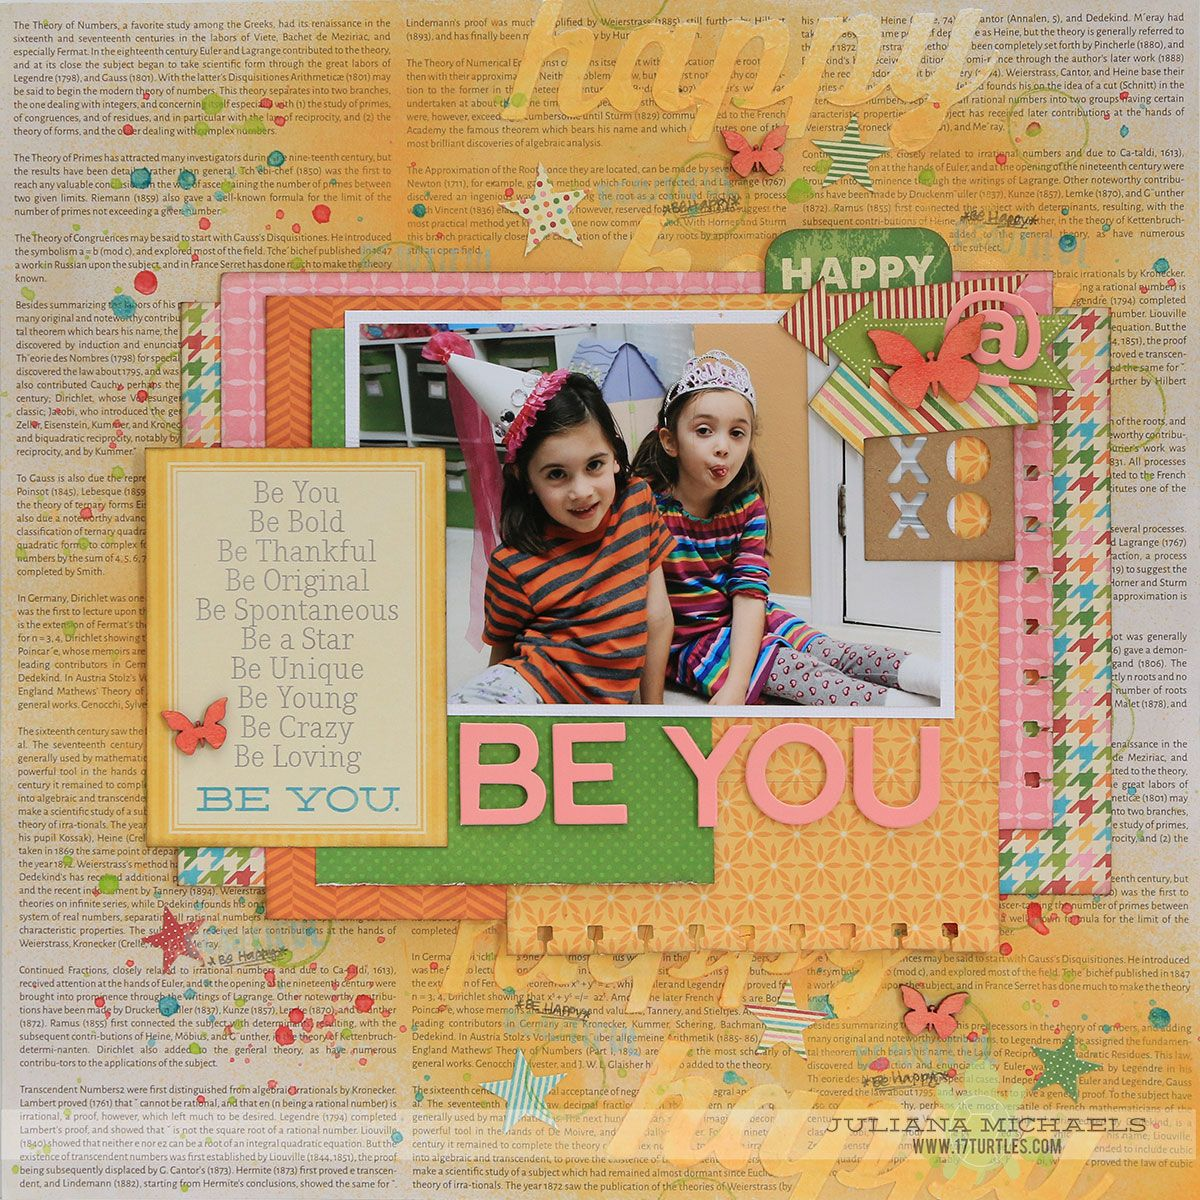 Be You Happy Scrapbook Page By Juliana Michaels Created For The